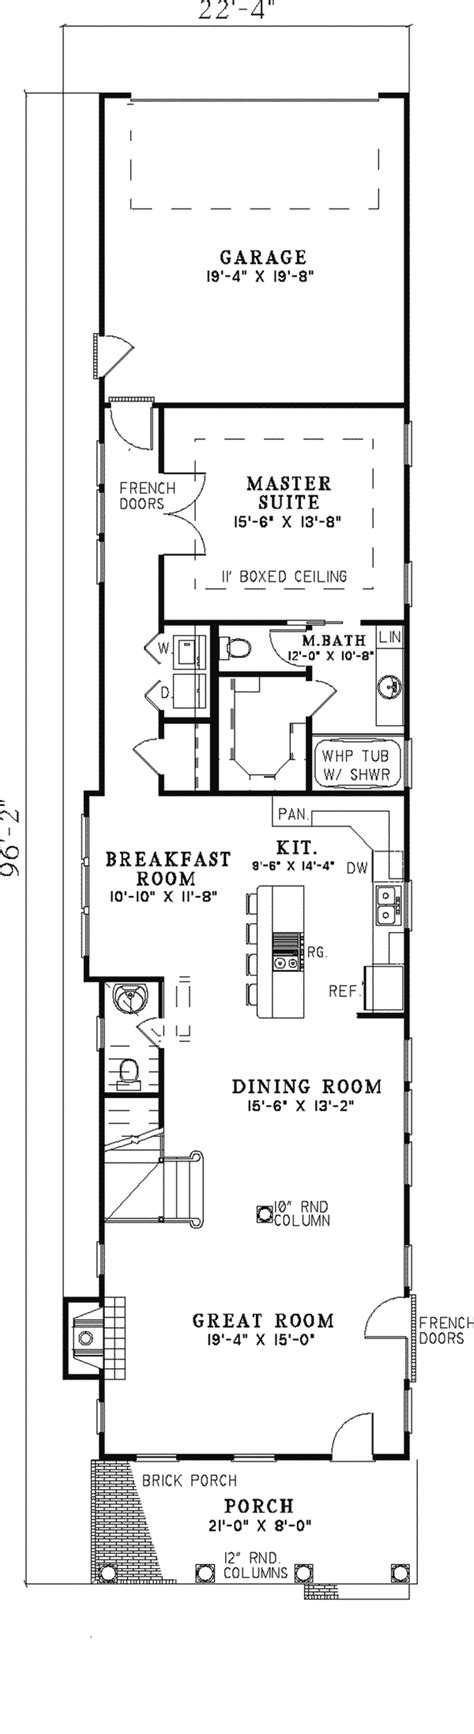 modern rectangular house plans home design modern rectangular house plans mansion bathroom for election